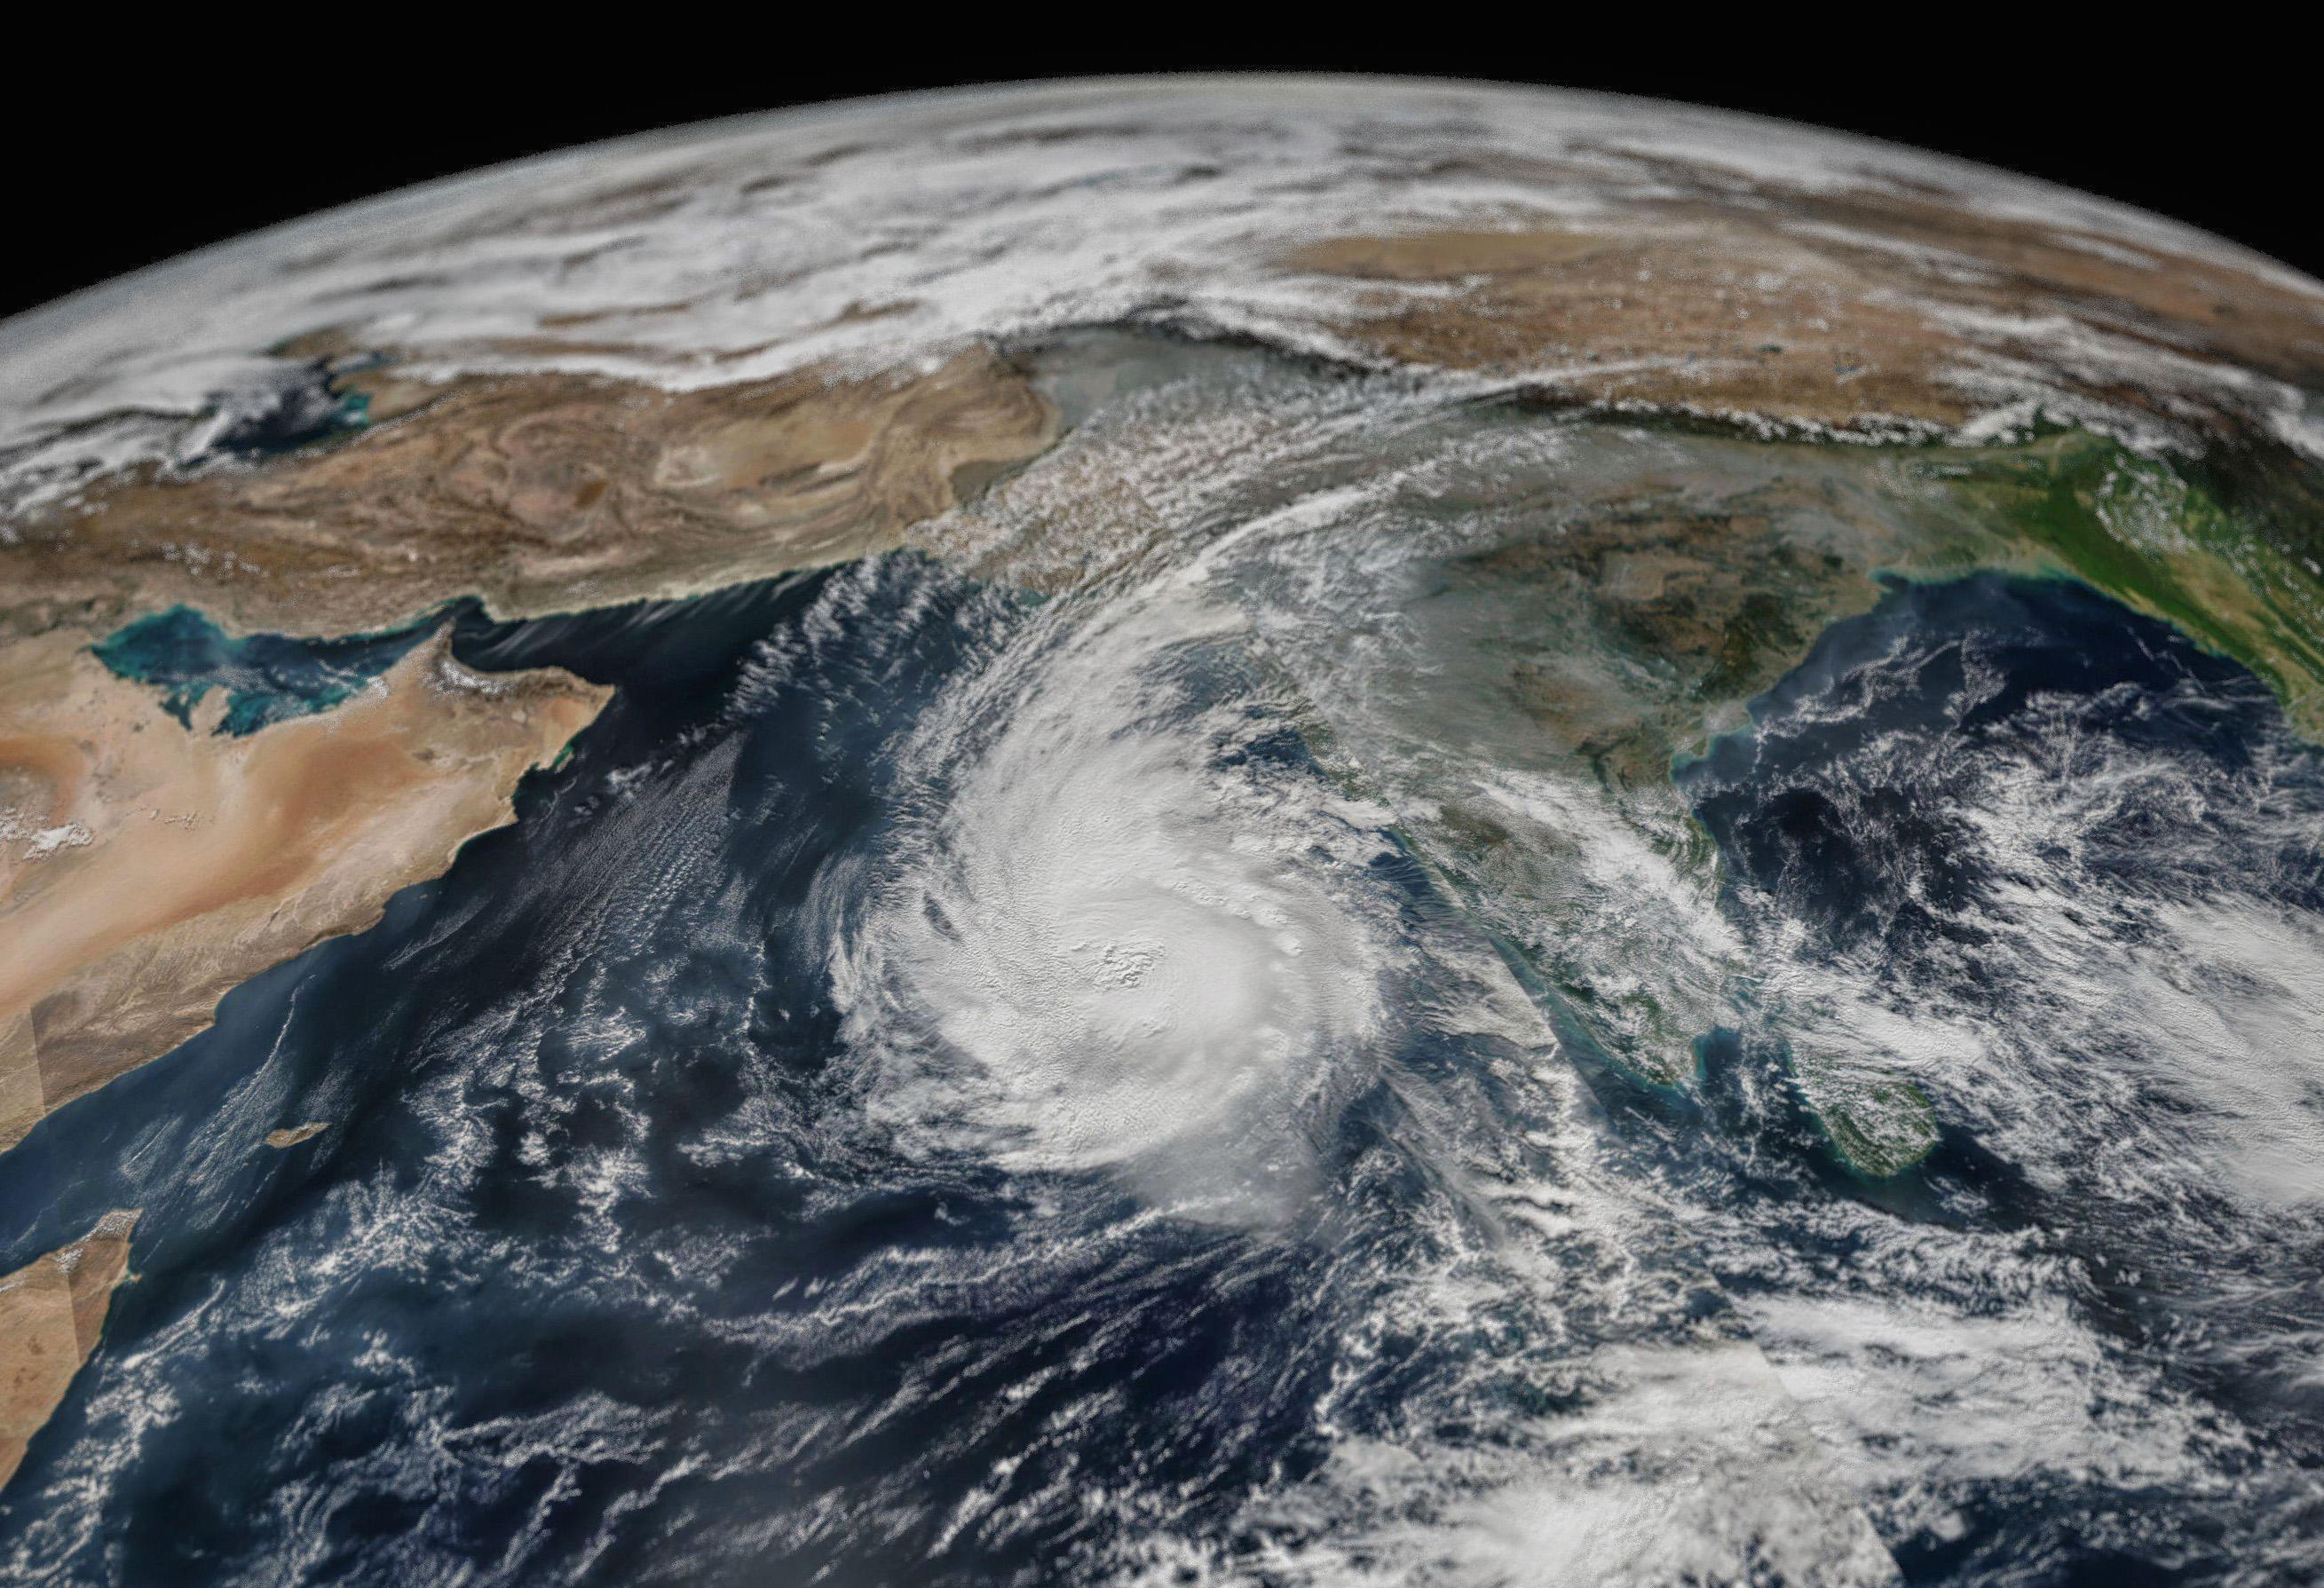 Cyclone Ockhi over the Arabian Sea on 3 December 2017. Based on VIIRS / SuomiNPP satellite data. Image: Antti Lipponen/ Flickr.